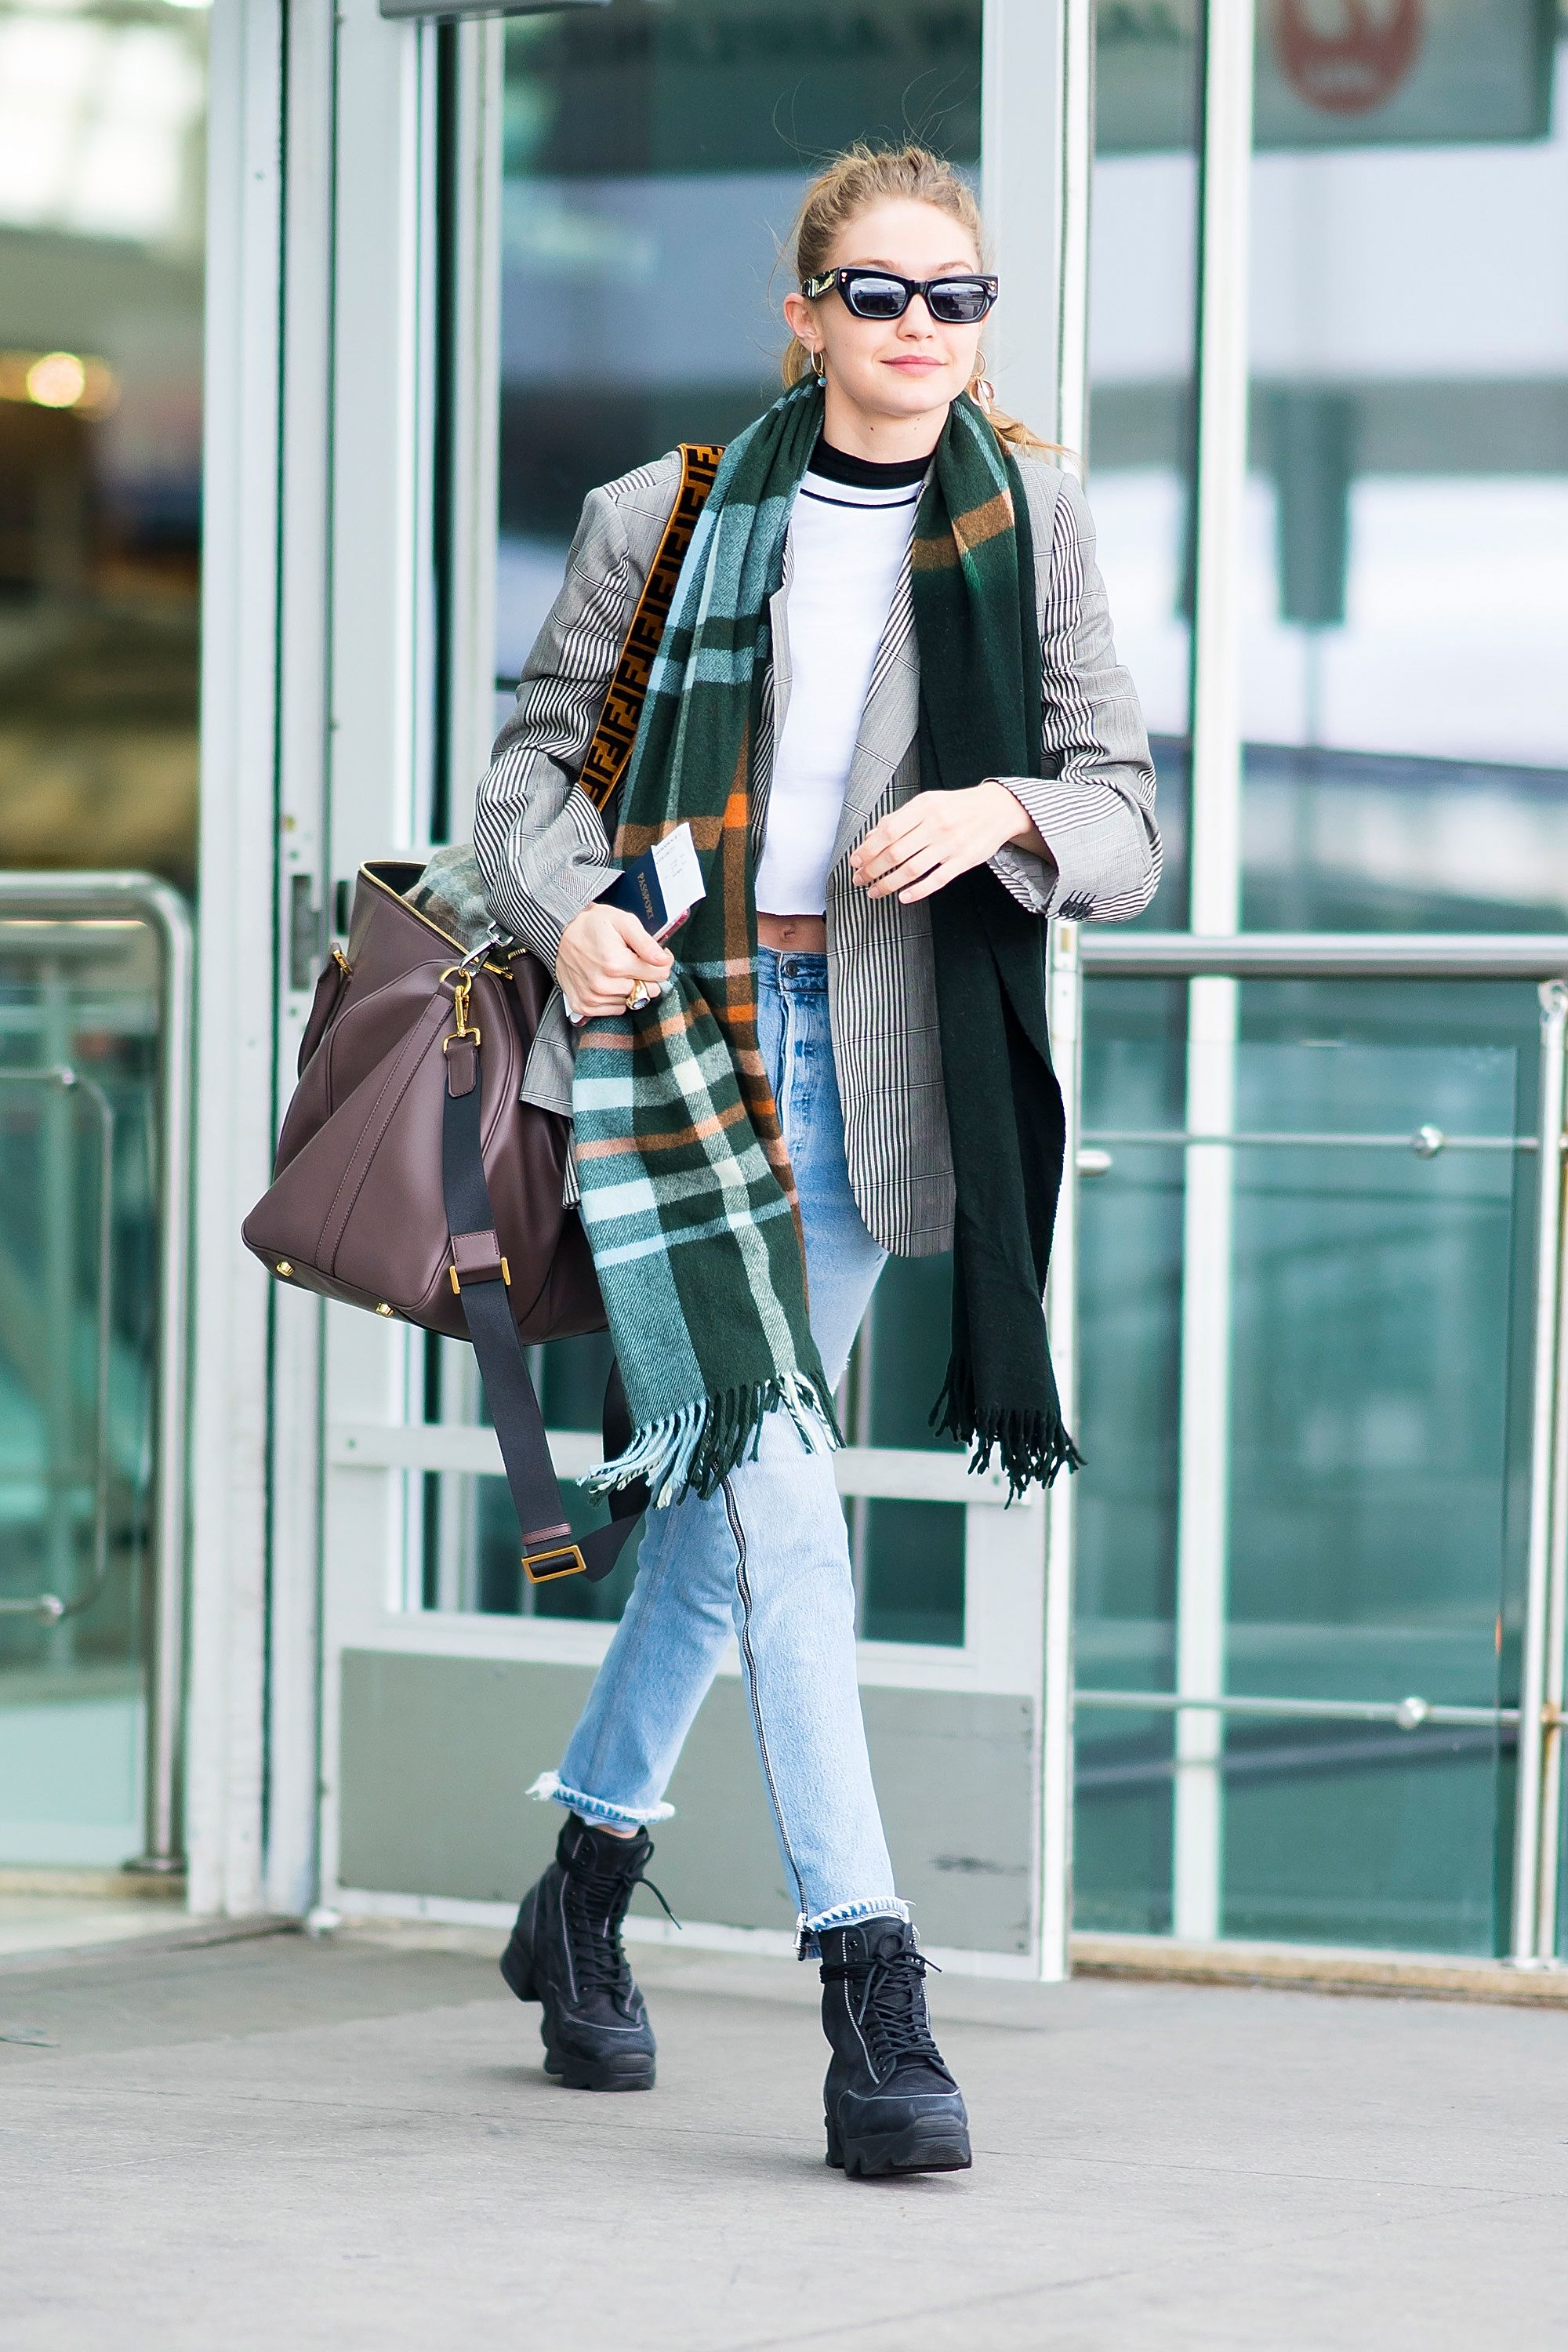 March 4, 2018 Hadid landed at JFK airport in a layered ensemble. She looked warm and comfortable in a Pared x Bec scarf, striped blazer, white crop T-shirt, blue jeans, and black boots.